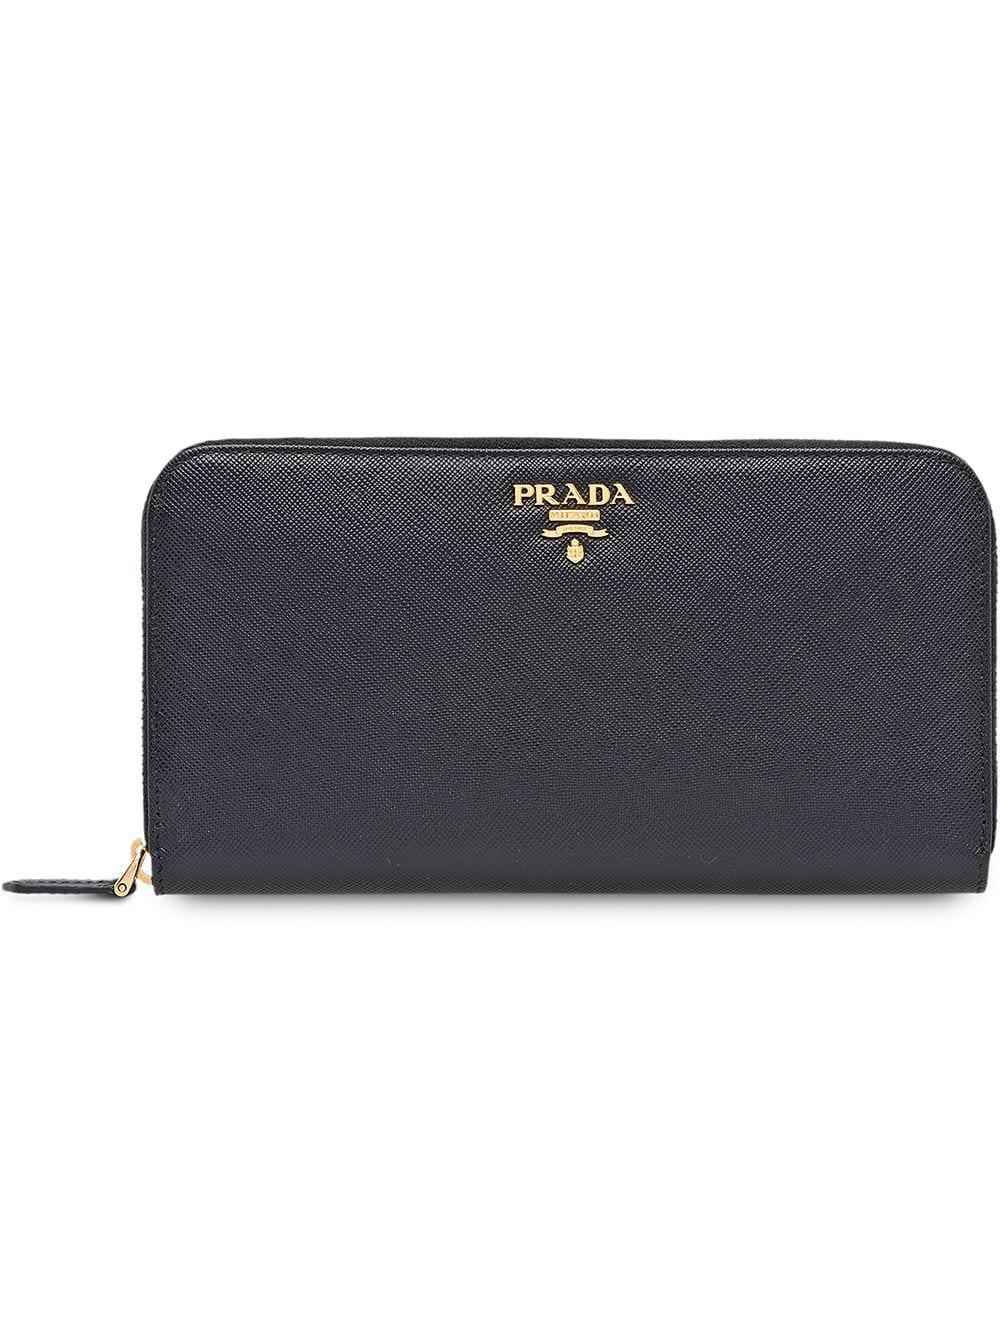 4600329c023b64 Prada Saffiano Metal Oro Zip-Around Wallet, Black (Nero) | ModeSens